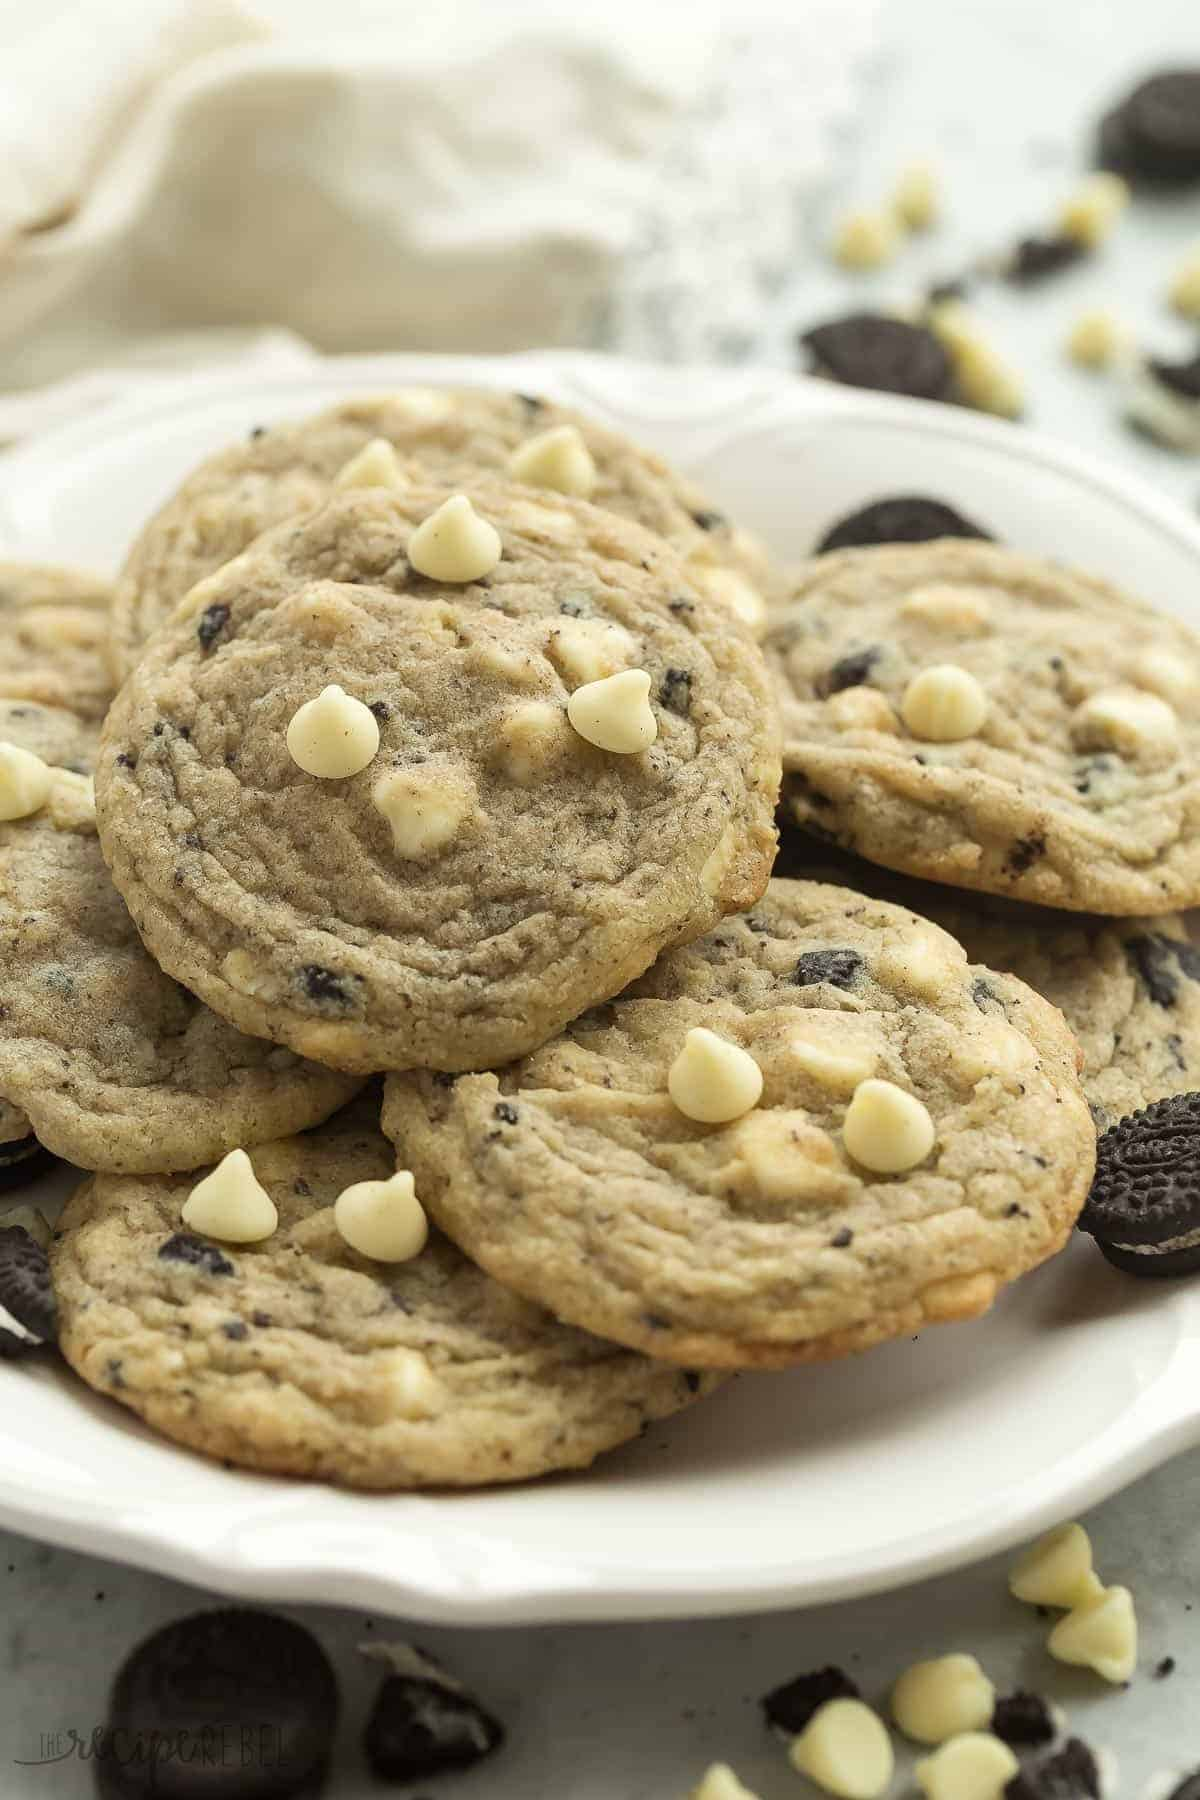 close up image of cookies and creamy cookies with white chocolate chips on top